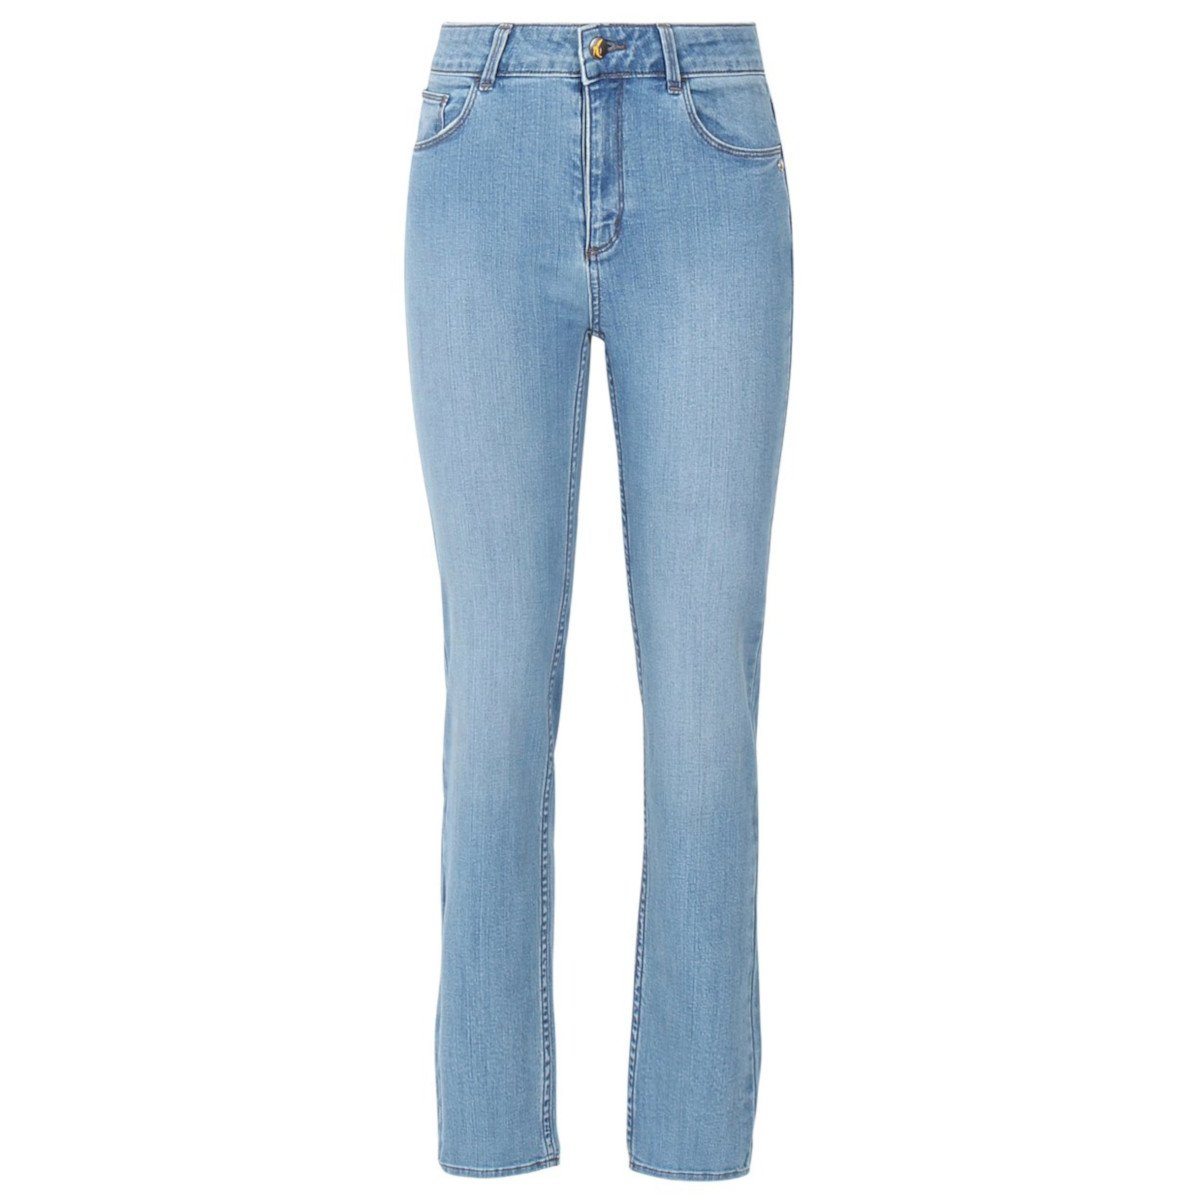 EMILY Organic Slim Fit Jeans in Light Wash